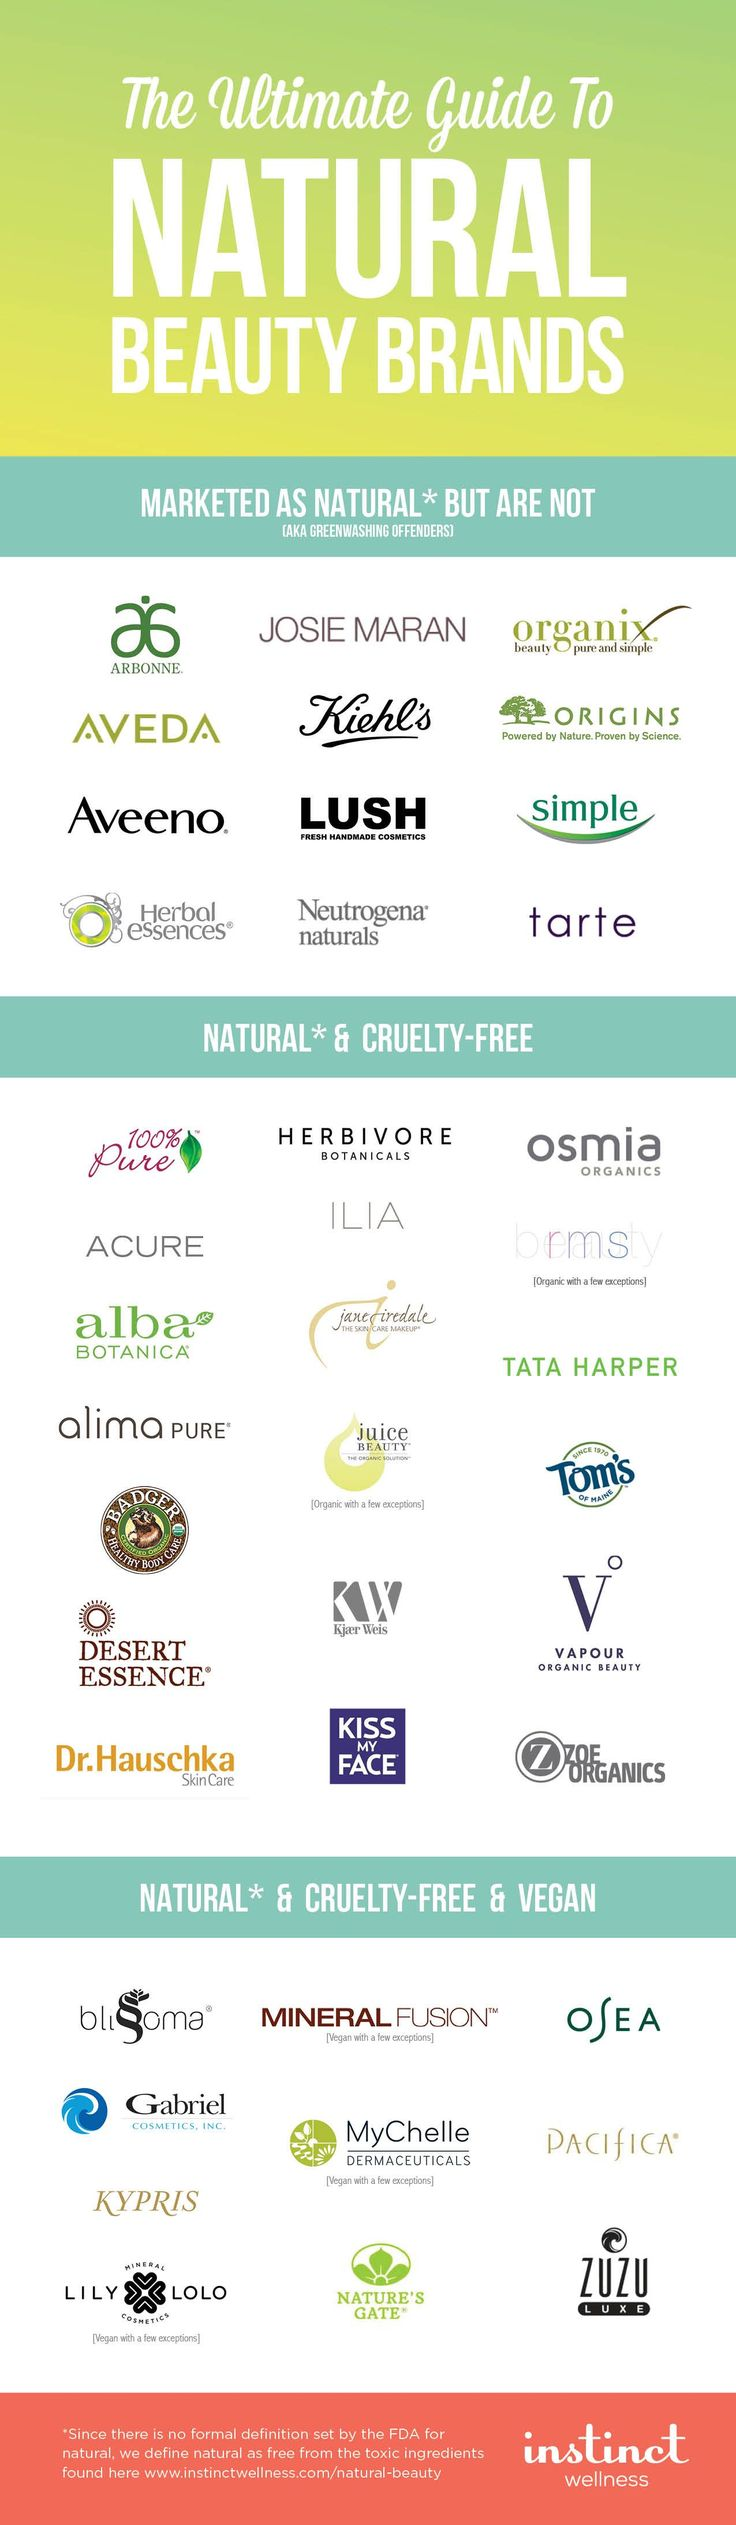 Best 25+ Chemical free makeup ideas on Pinterest   Organic face ...